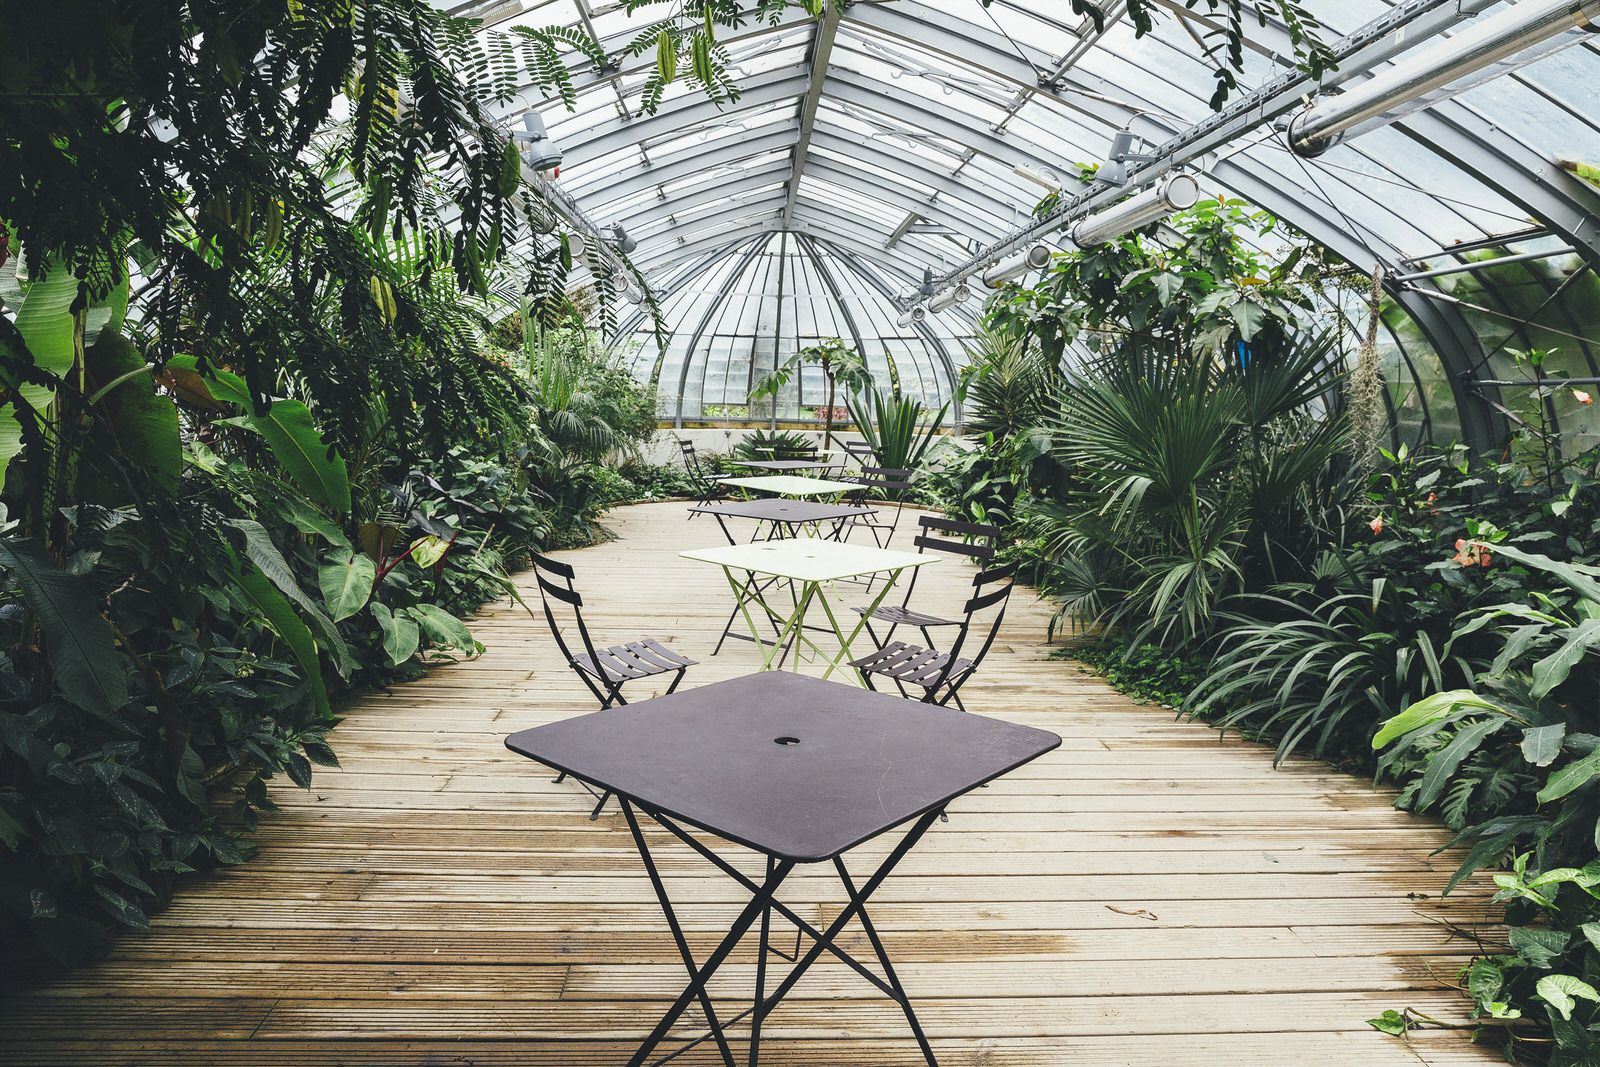 Terrasse Nantes Stunning Terrasse Et Jardin Nantes Contemporary Awesome